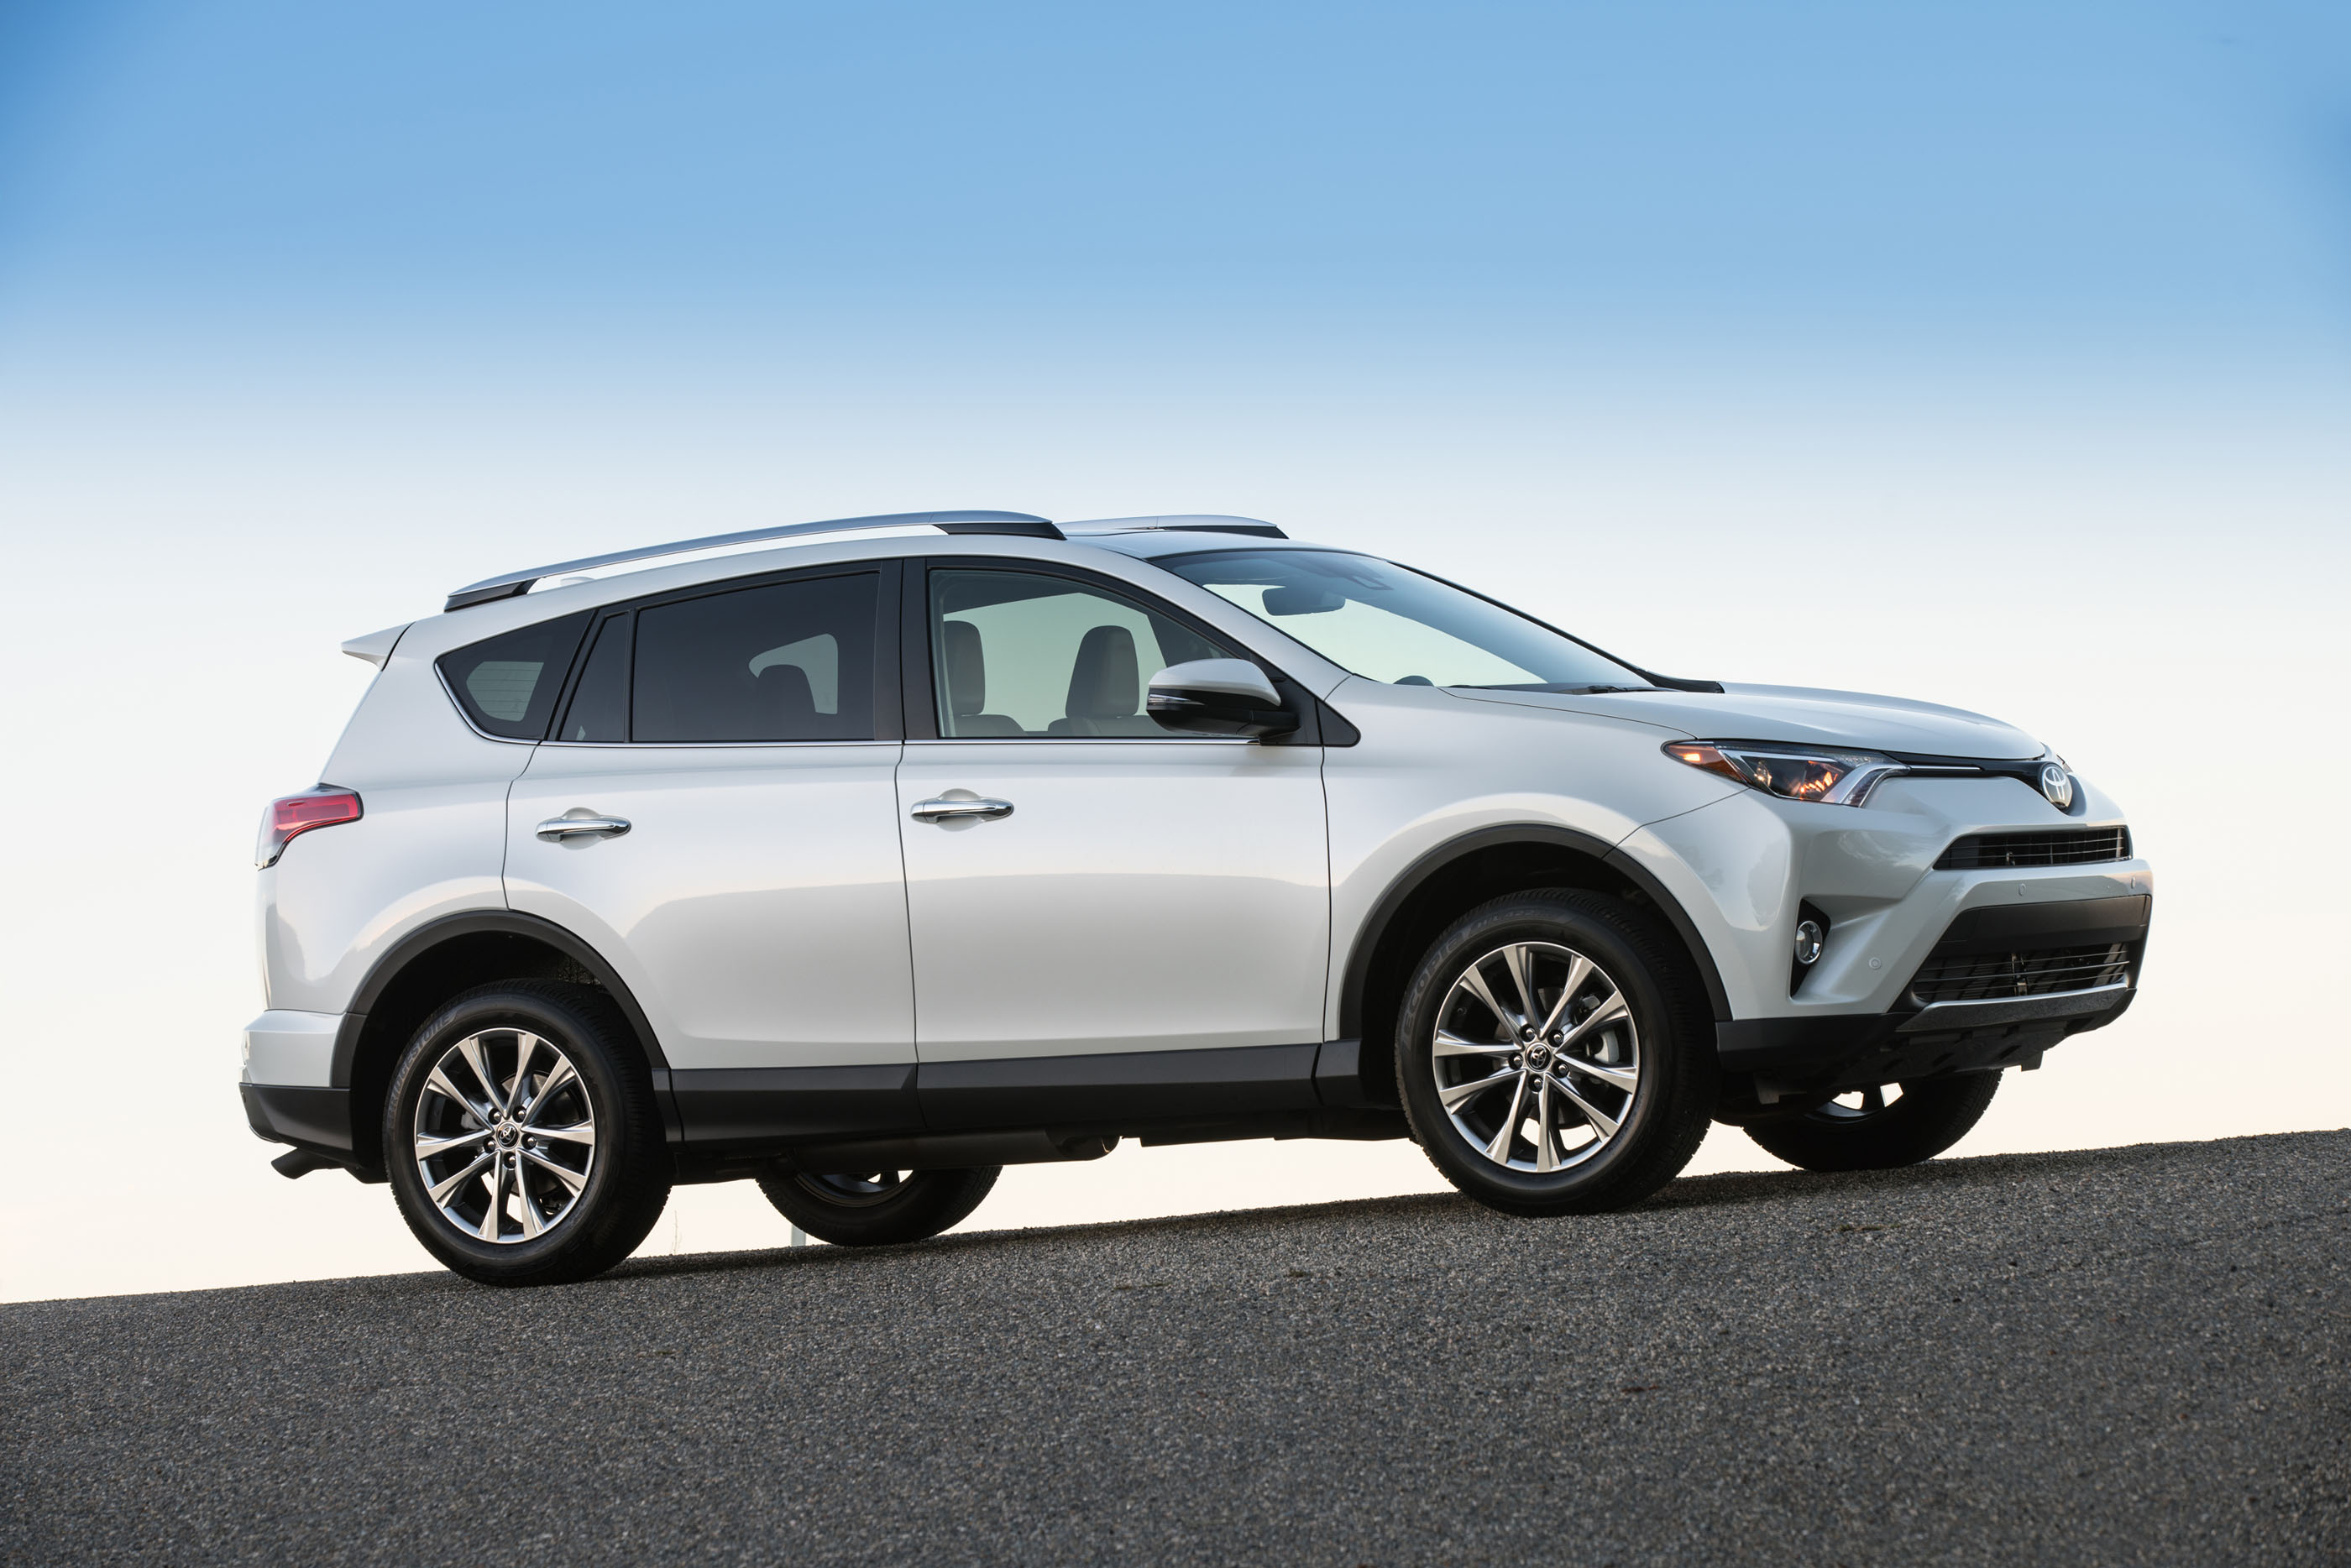 2017 Toyota Rav4 Safety Review And Crash Test Ratings